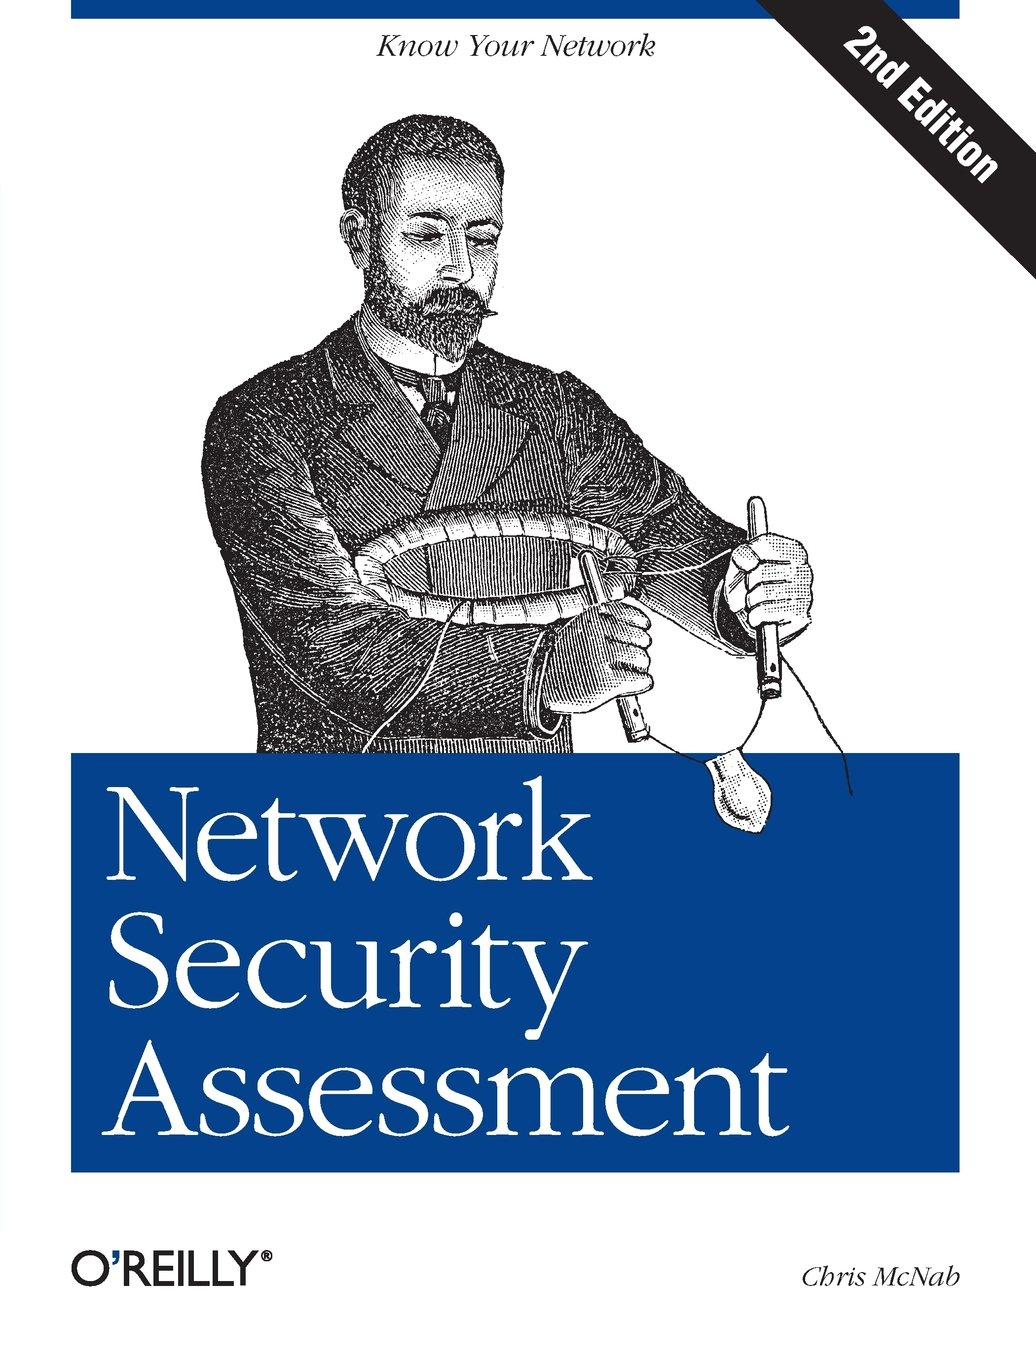 Network security assessment, 3rd edition free download, code.